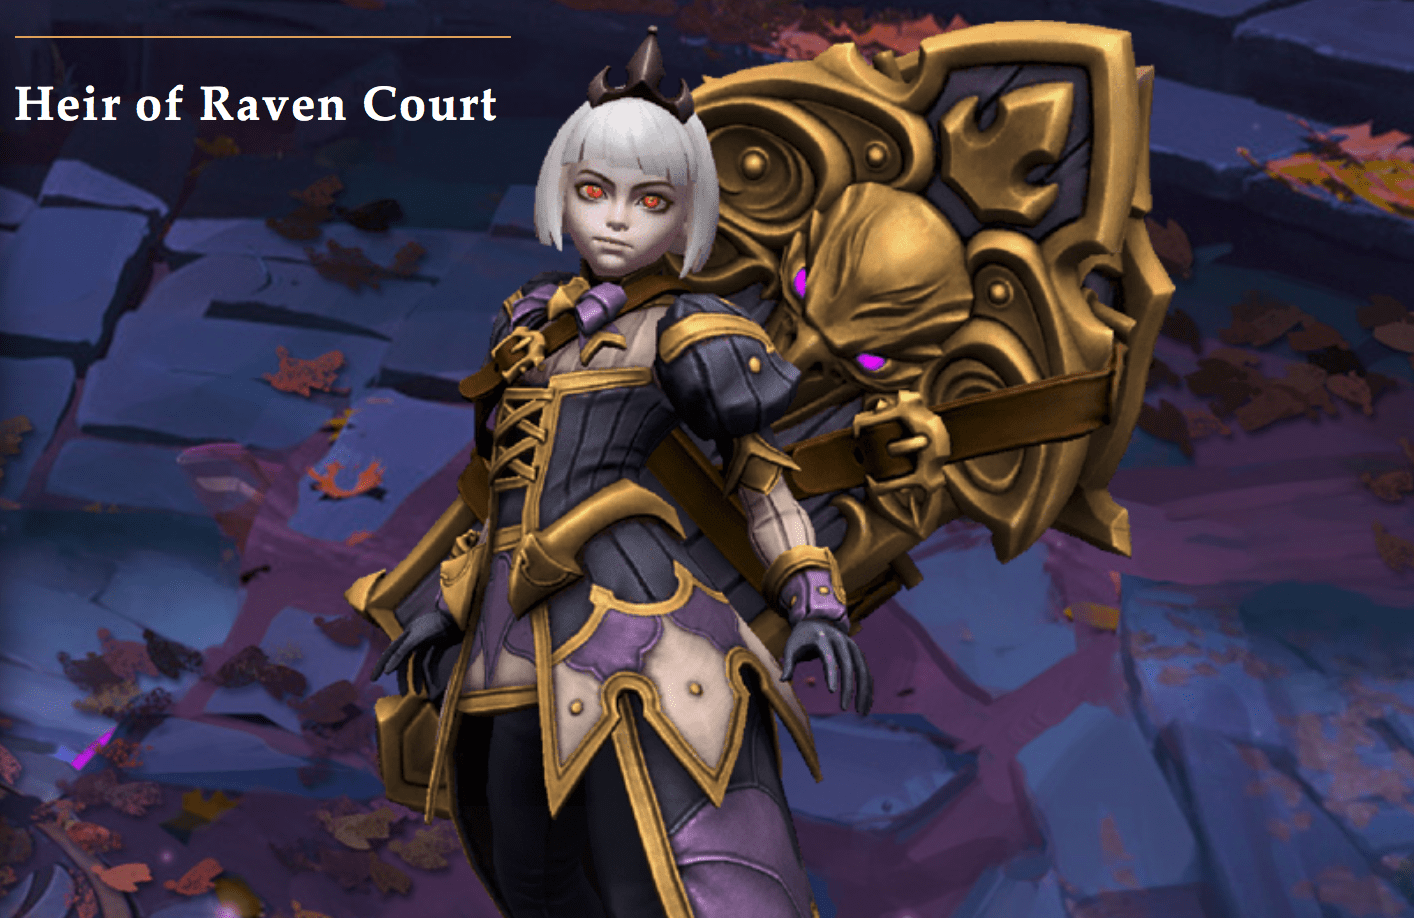 Heroes of the Storm's newest hero is Orphea, Heir of Raven Court and born from the Nexus